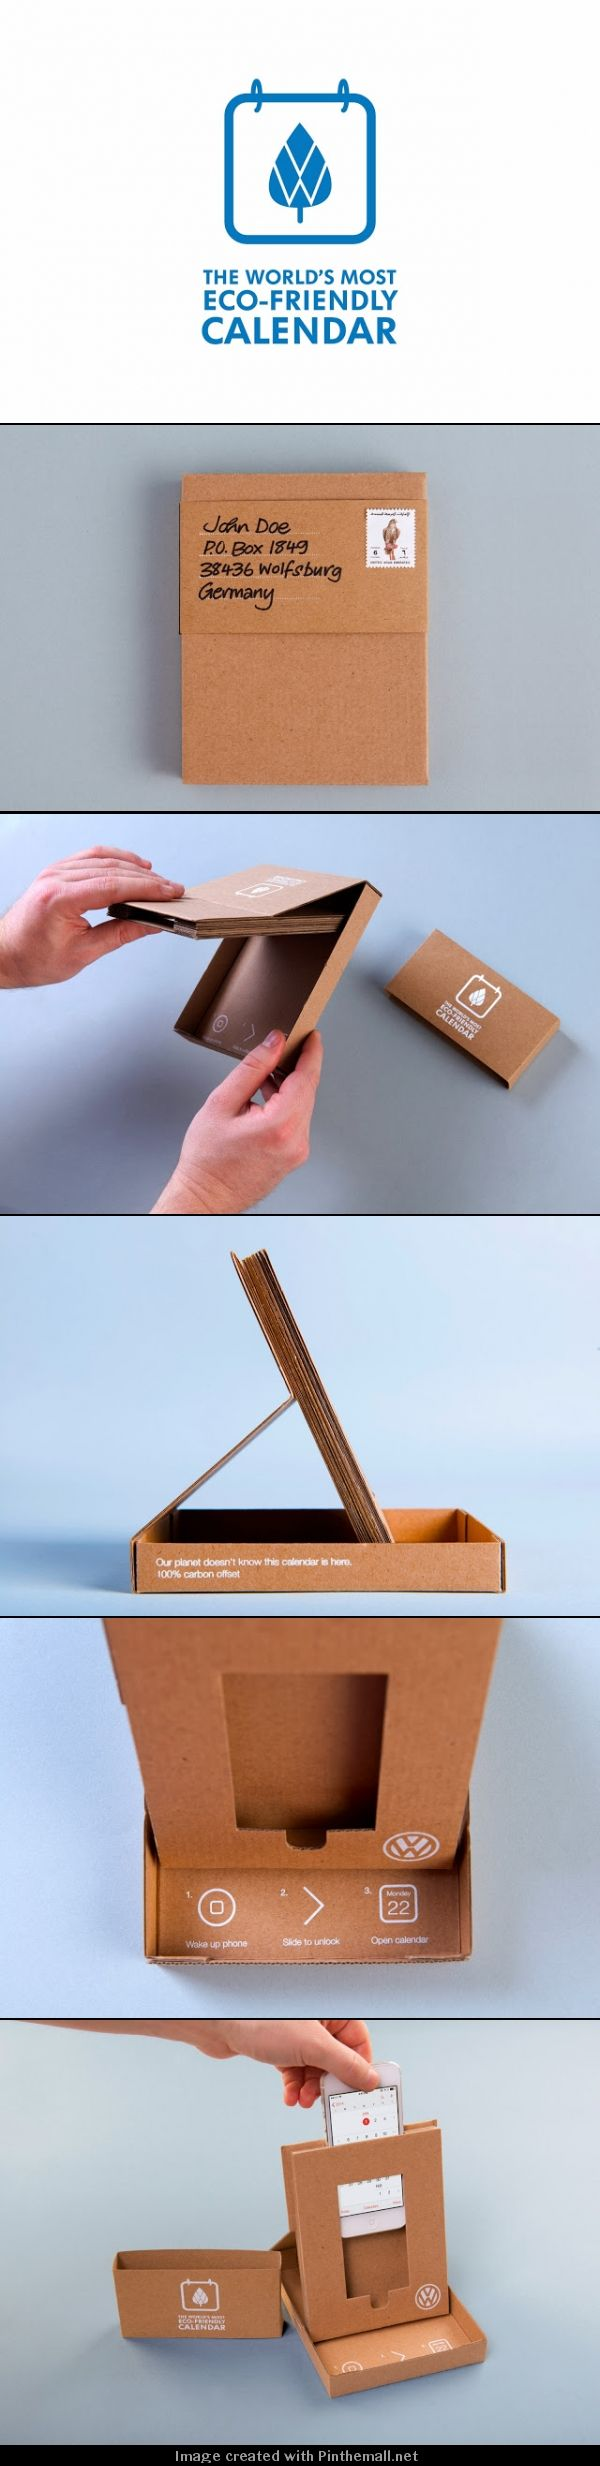 The world's most #eco friendly calendar #packaging PD - created via http://www.packagingoftheworld.com/2014/02/the-worlds-most-eco-friendly-calendar.html?utm_source=twitterfeed&utm_medium=twitter&utm_campaign=Feed%3A+packagingsoftheworld+%28Packagings+of+the+World%29